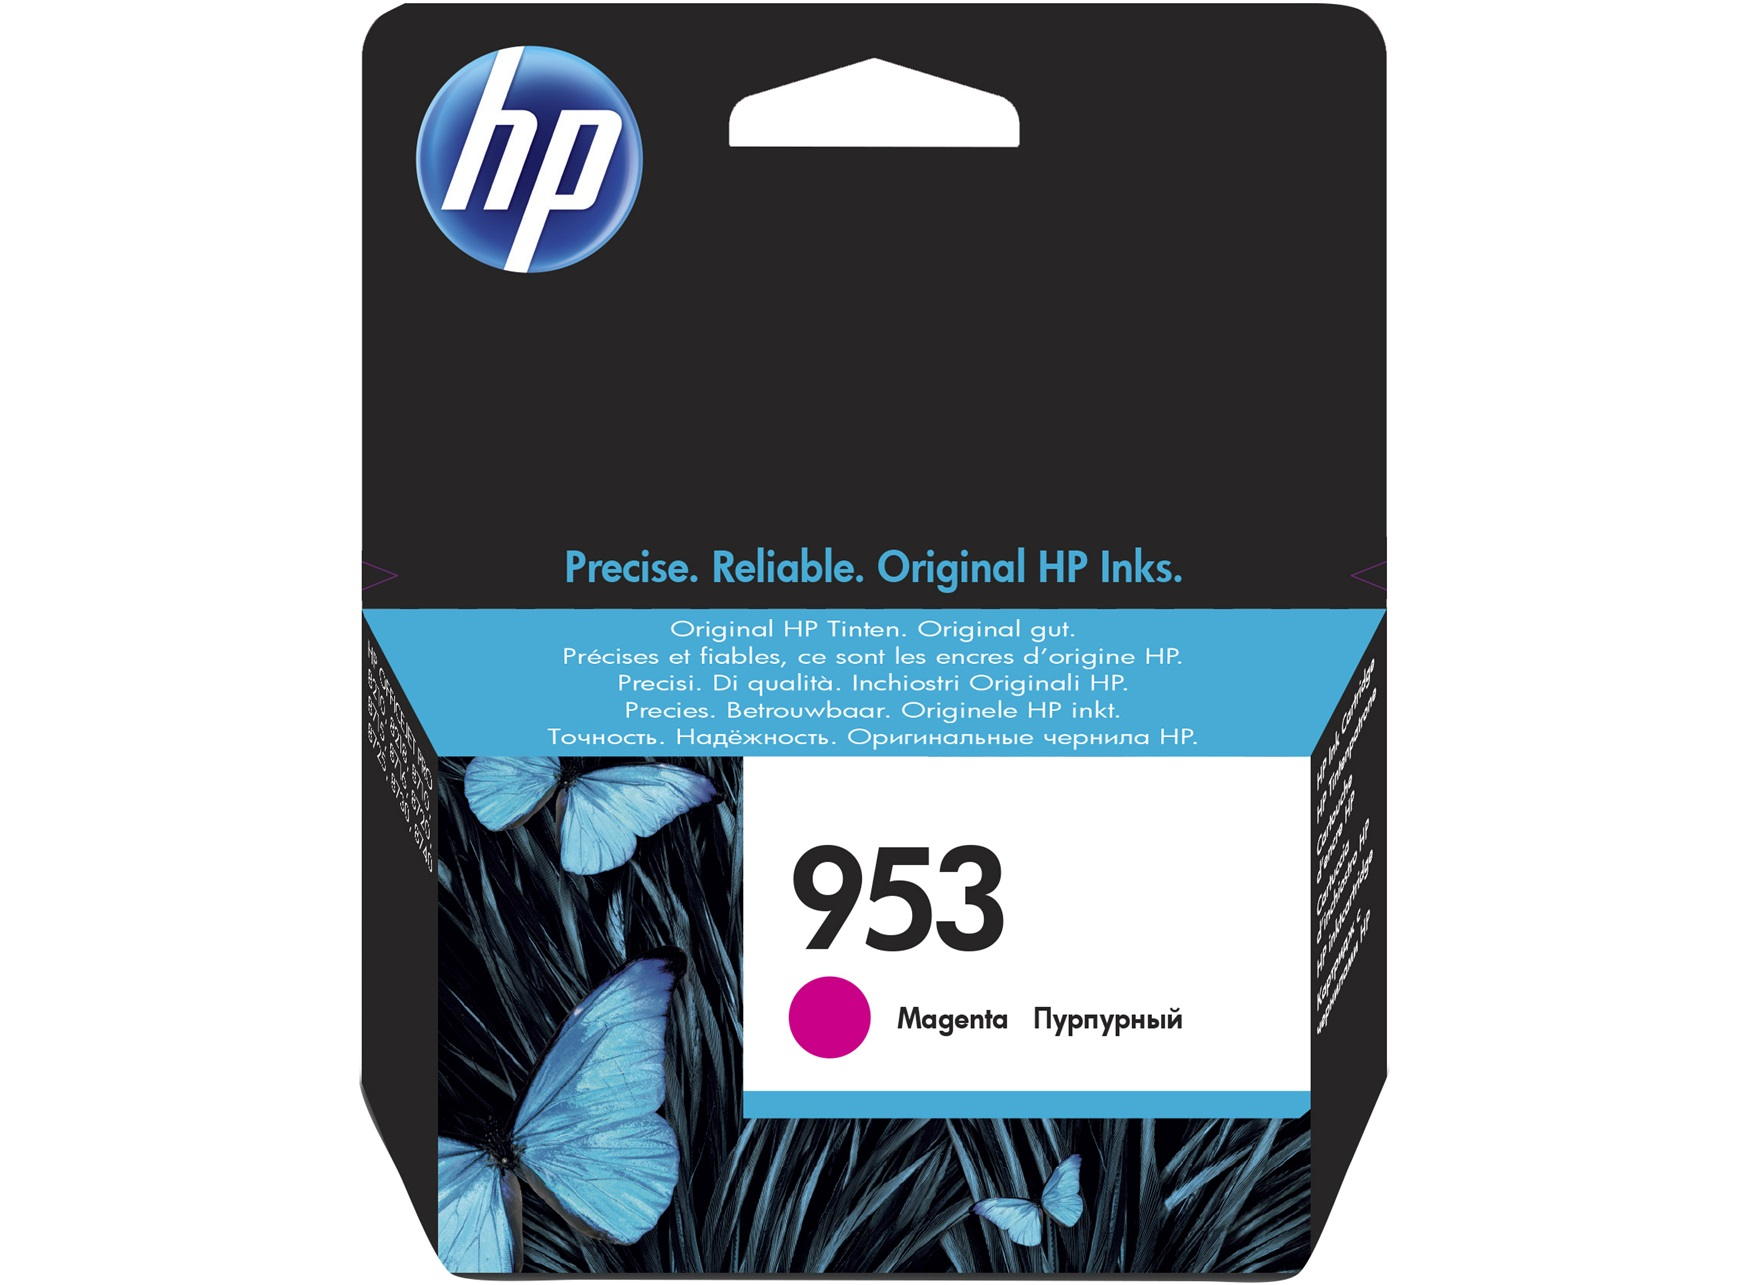 HP 953 Magenta Original Ink Cartridge 10ml 700pages Magenta ink cartridge